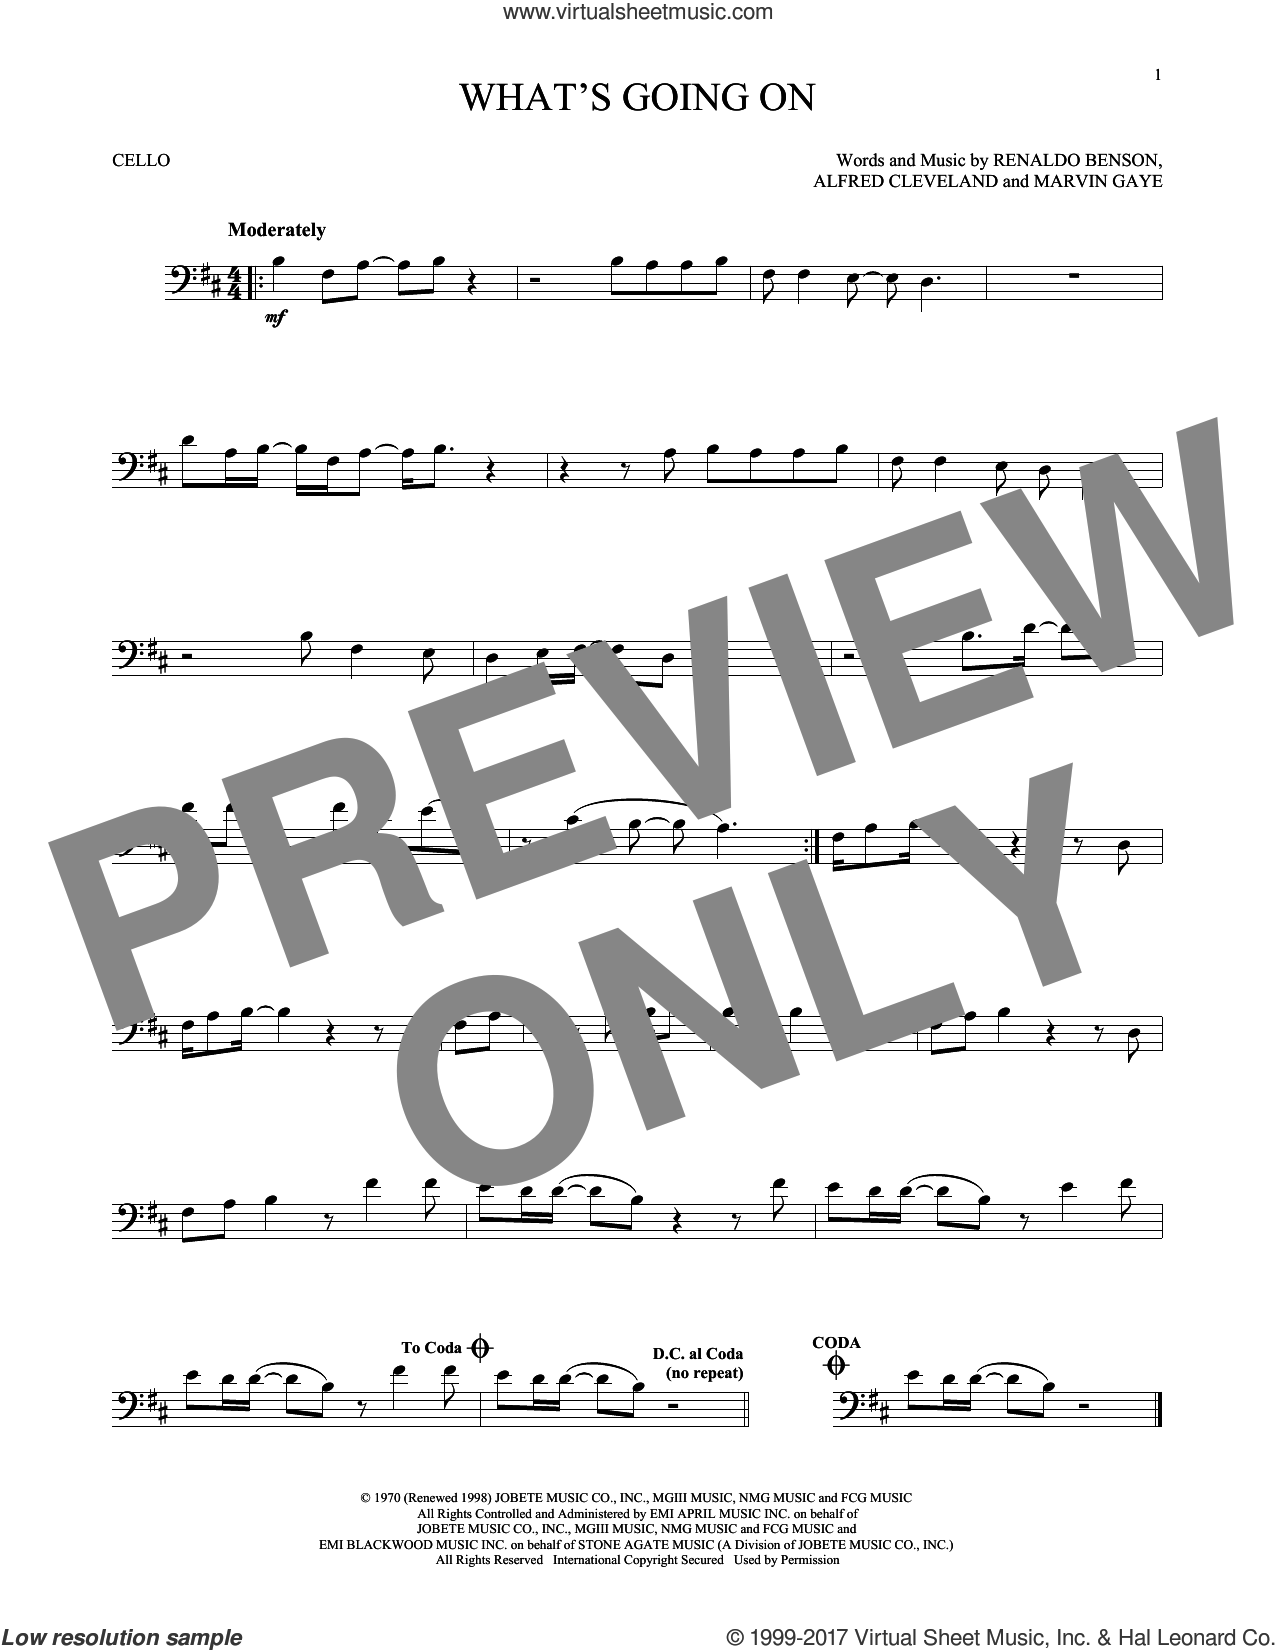 What's Going On sheet music for cello solo by Marvin Gaye, Al Cleveland and Renaldo Benson, intermediate skill level